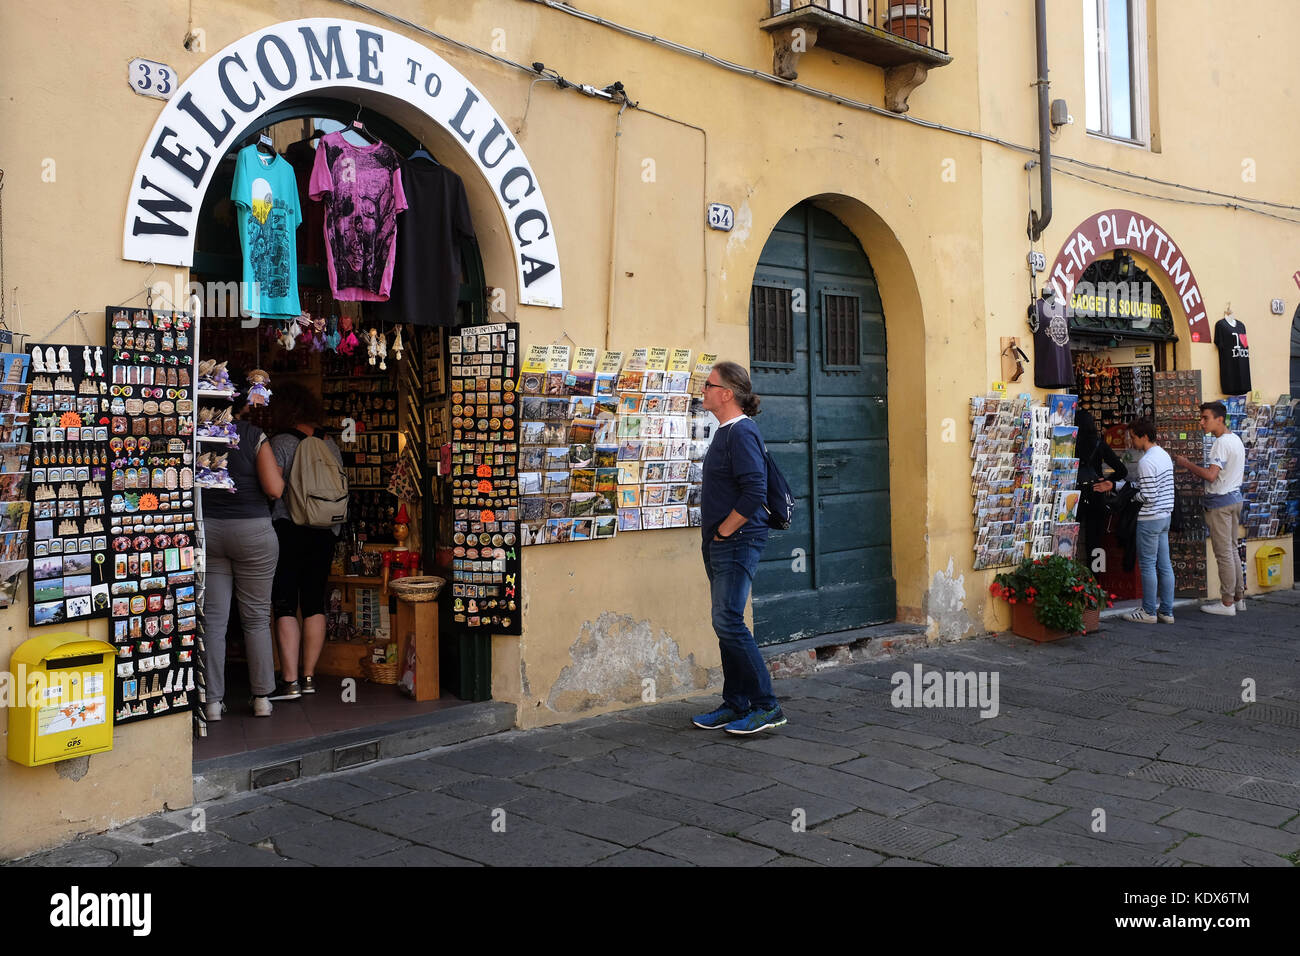 The beautiful Italian City of Lucca with its narrow streets and tourist shops in the Tuscany Region of Italy. - Stock Image